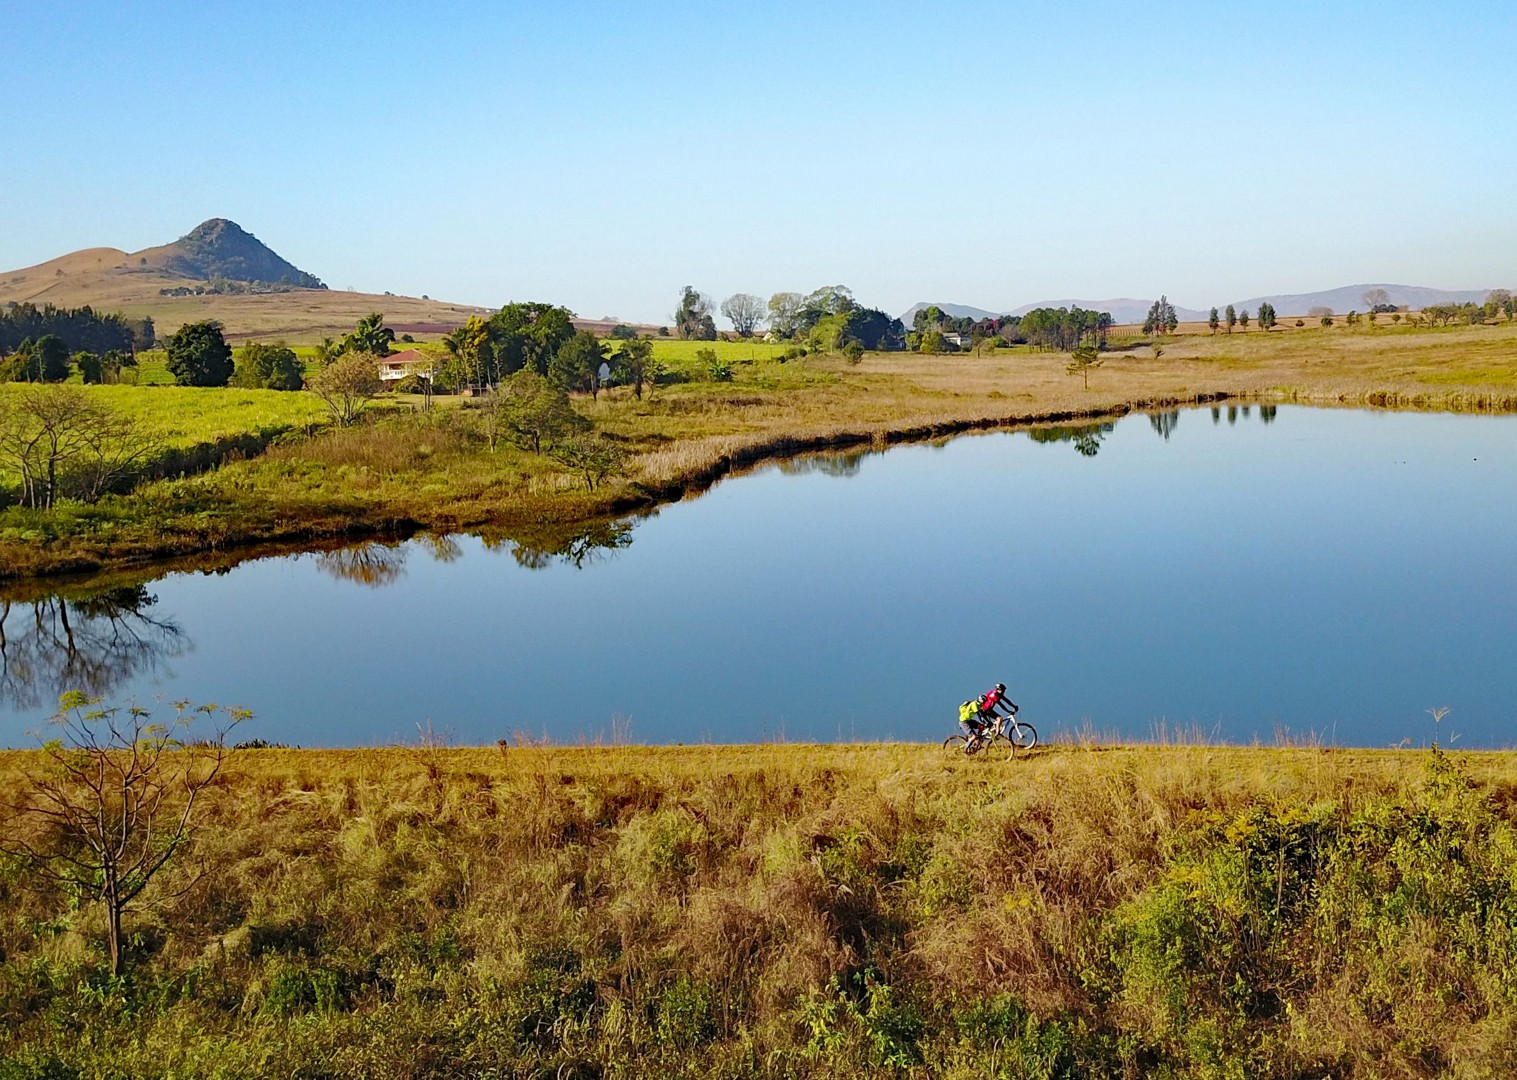 africa-swaziland-singletrack-and-sundowners-guided-mountain-bike-holiday.jpg - Swaziland (Eswatini) - Singletrack and Sundowners - Mountain Biking